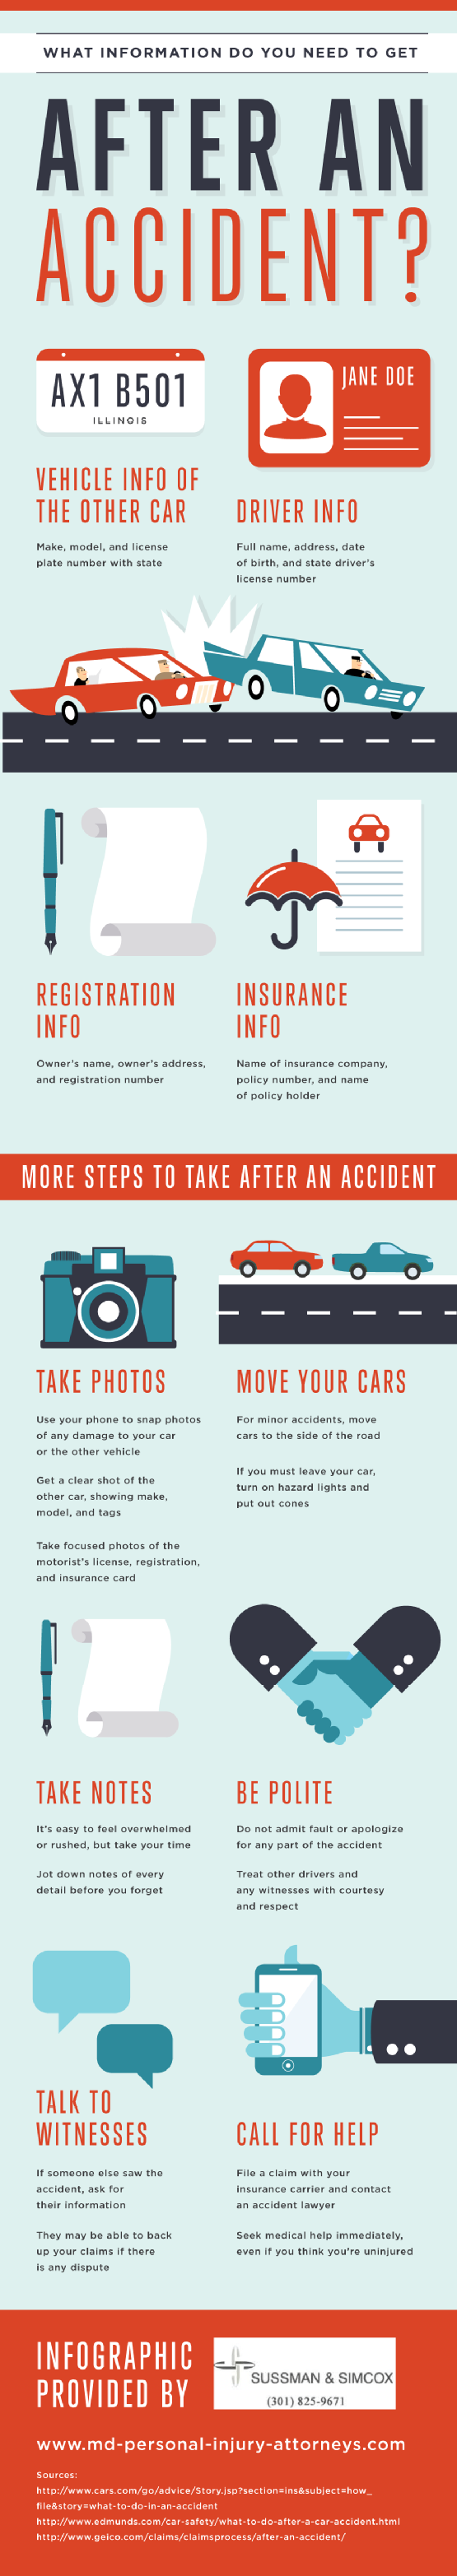 What Information Do You Need To Get After An Accident [infographic]